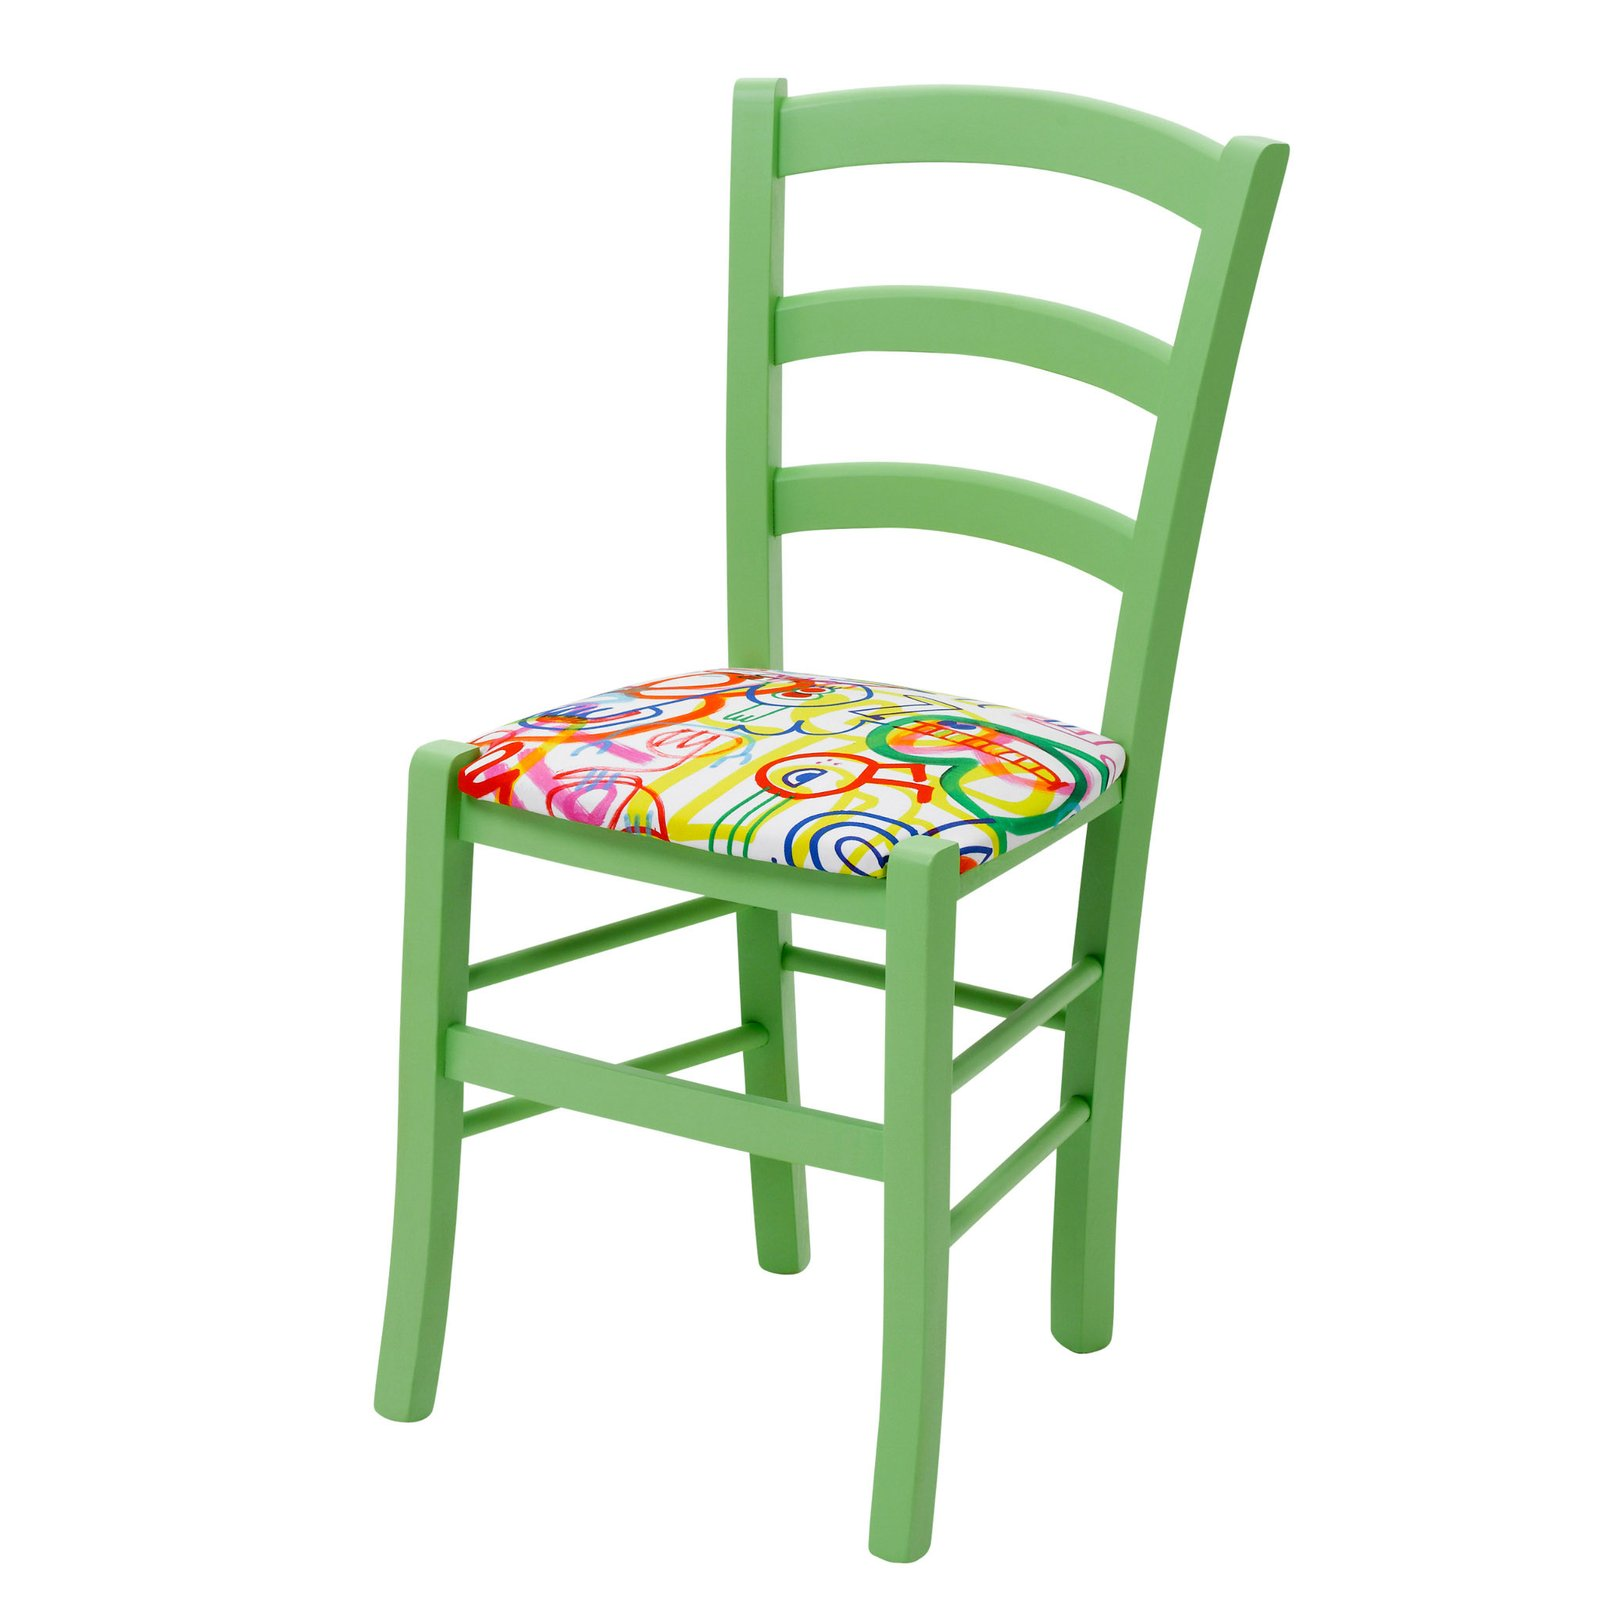 Green Upholstered Chair Green Upholstered Chairs Daisy Kitchen By Cheeky Chairs In Frooty Tooty By Jon Burgerman